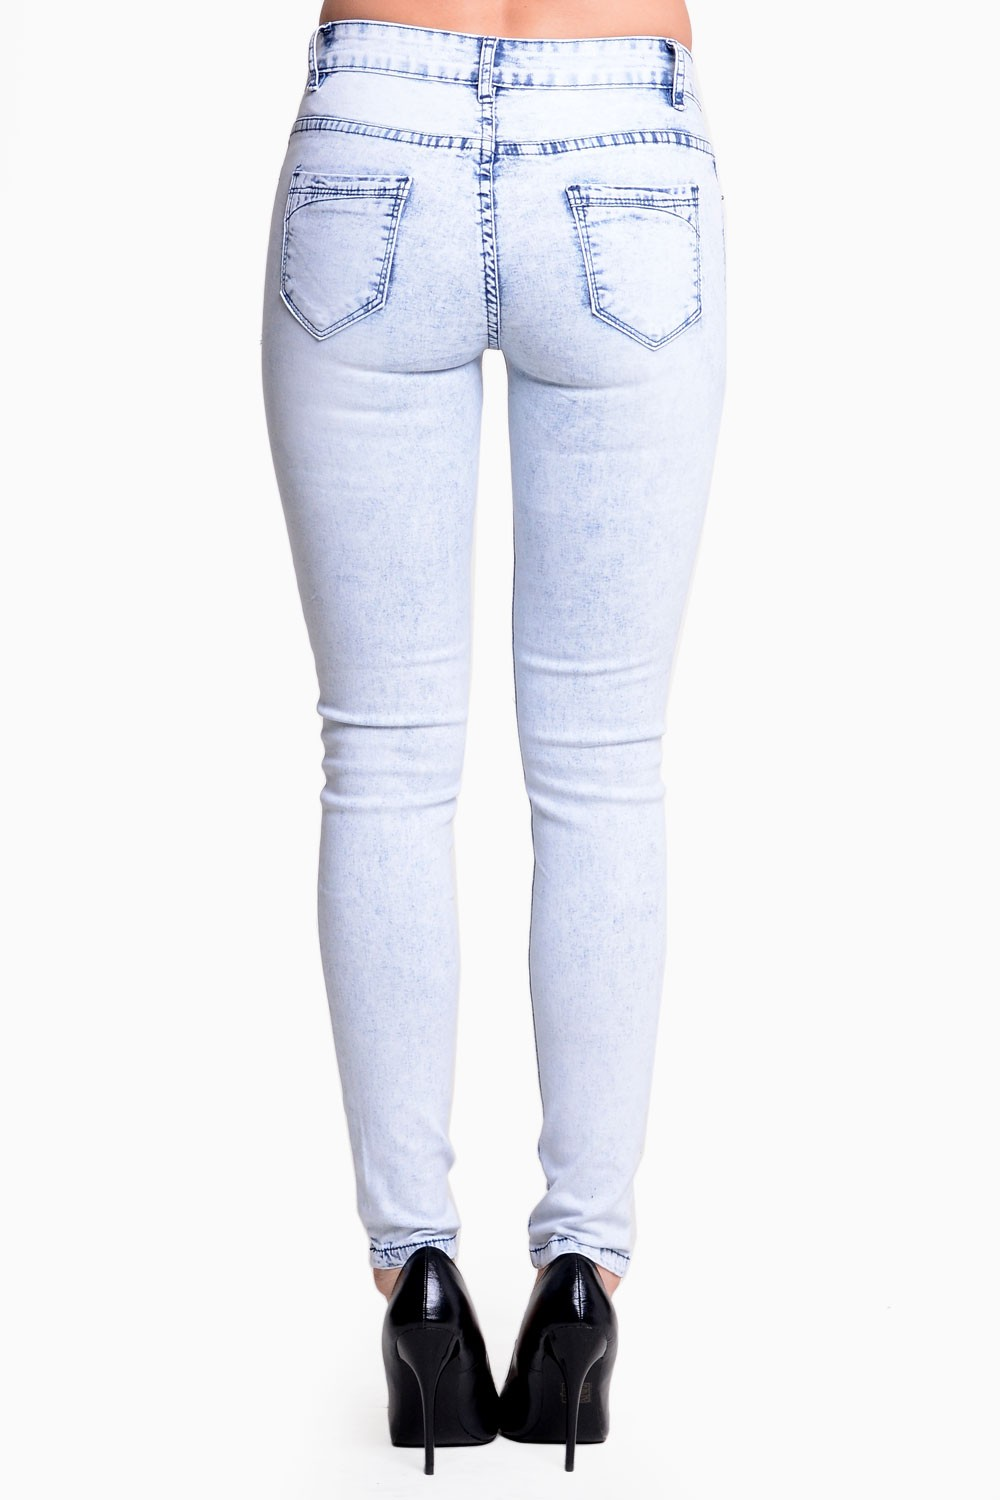 Super skinny jeans in a light stone or Acid wash. Dark antique Blue GESO Yes Me Premium Soft Stretch Black Acid Wash Denim Jeans Skinny Leg Pants. by GESO. $ $ 18 FREE Shipping on eligible orders. out of 5 stars 3. Product Features.